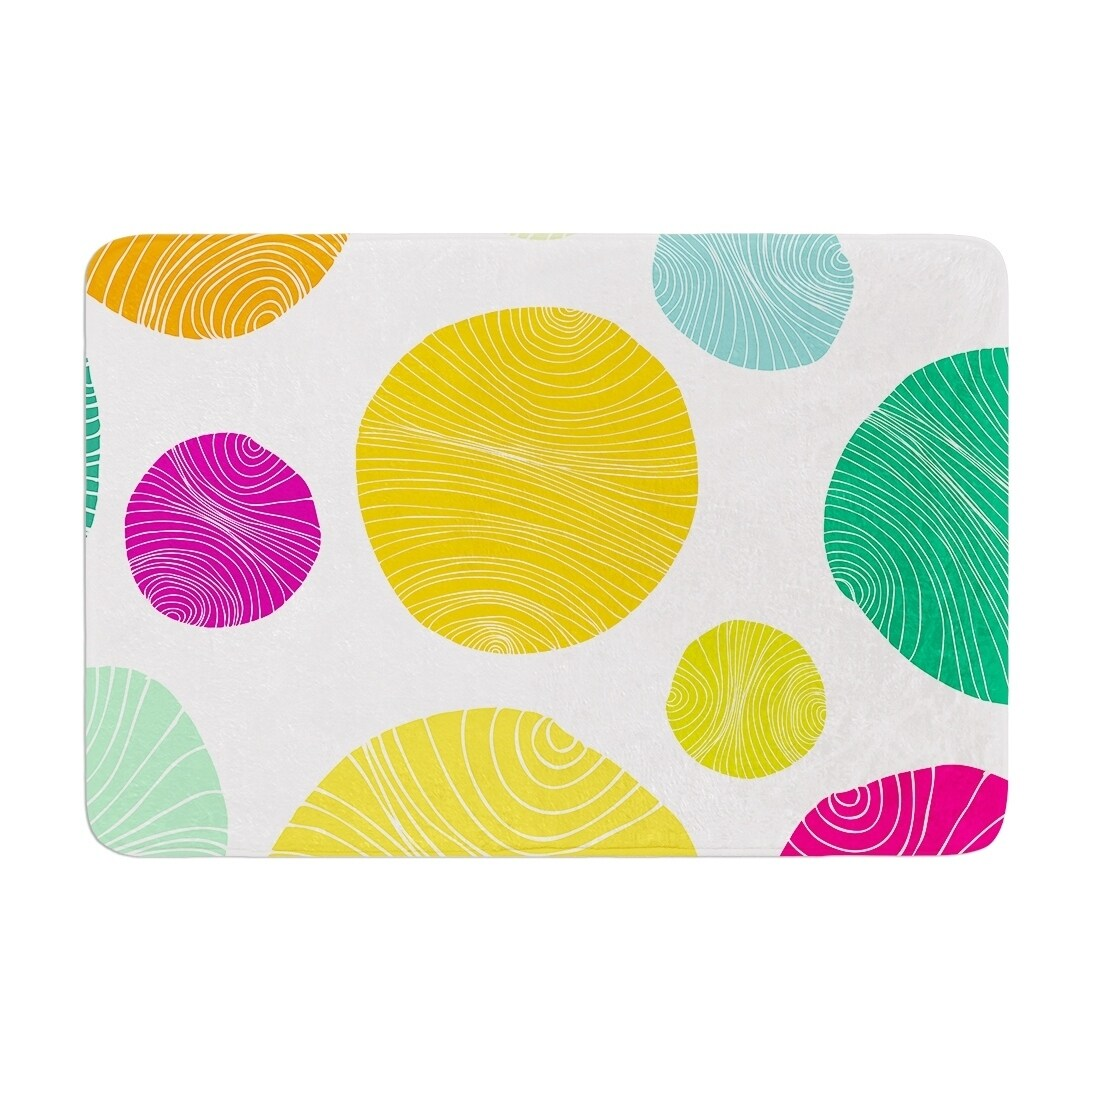 "Anchobee ""Eolo"" Memory Foam Bath Mat Yellow Single Piece - Diamond Home USA"